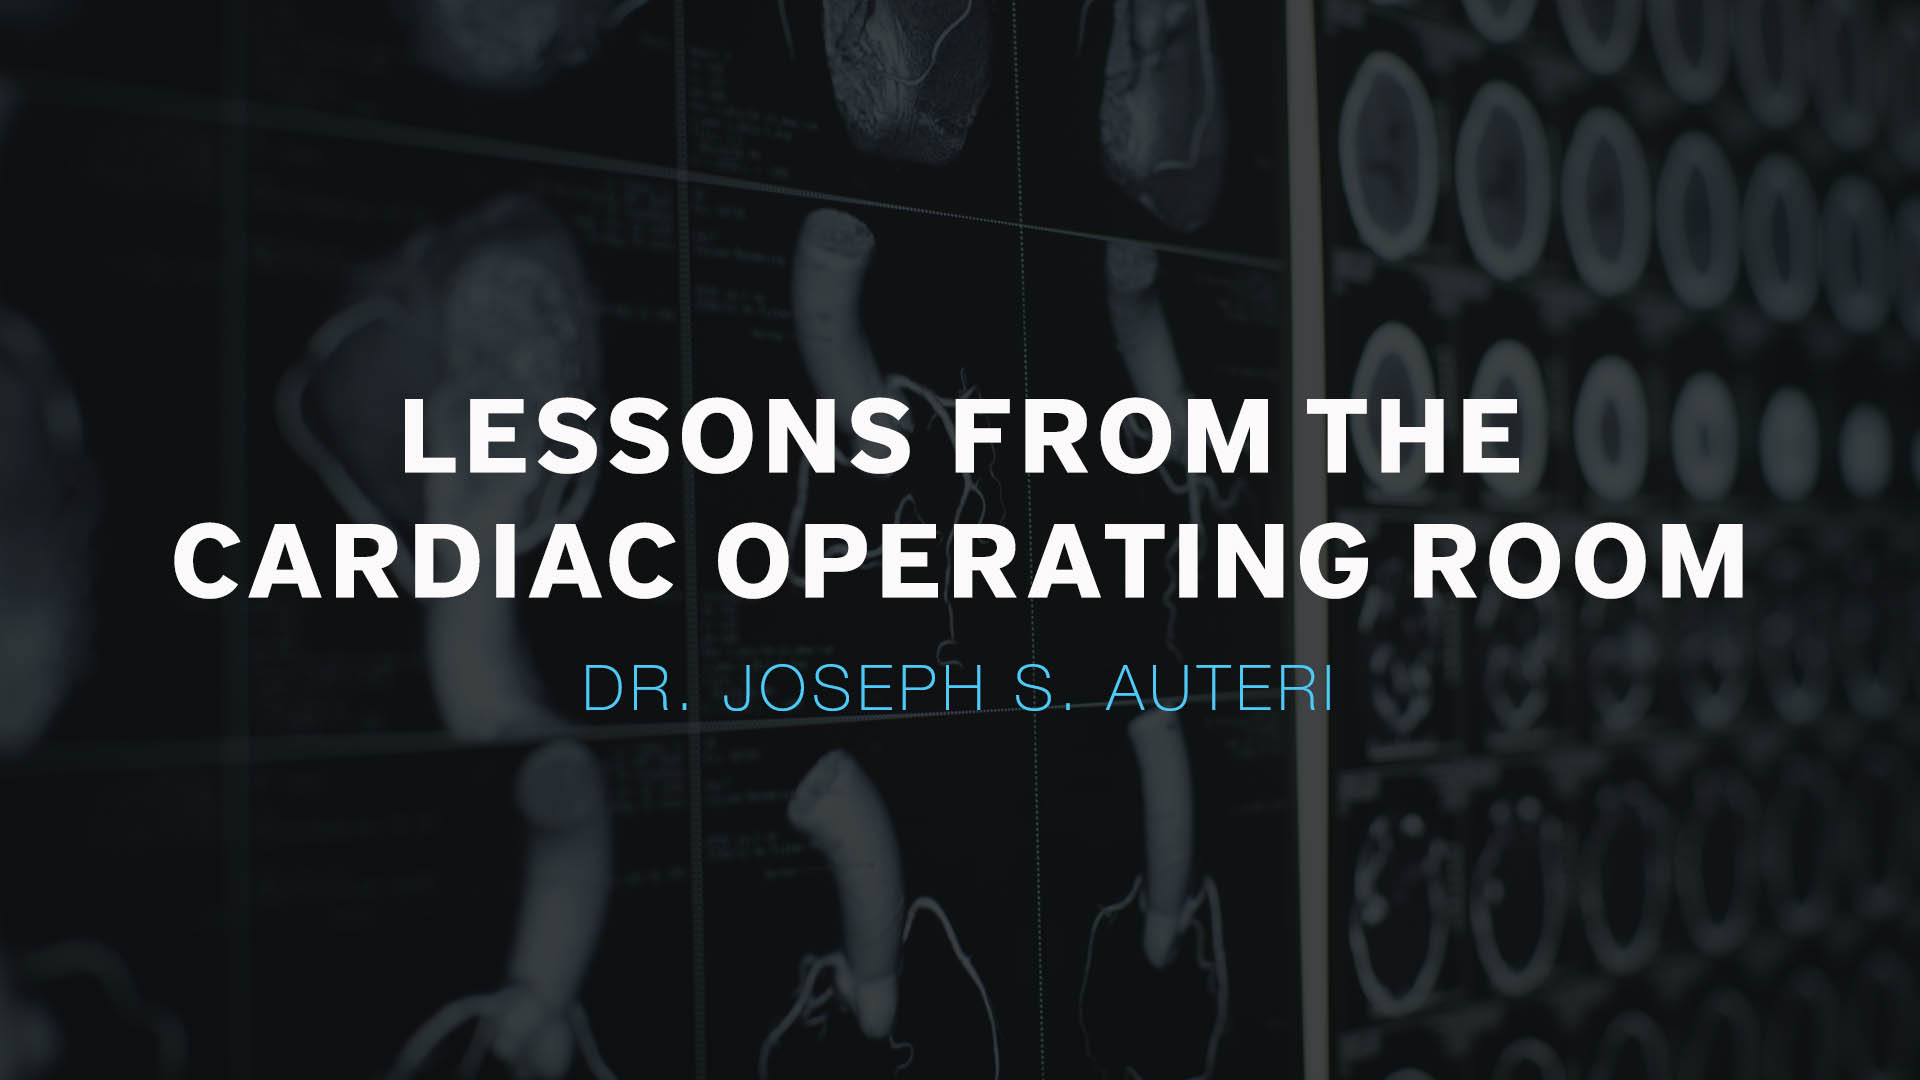 Lessons from the Cardiac Operating Room